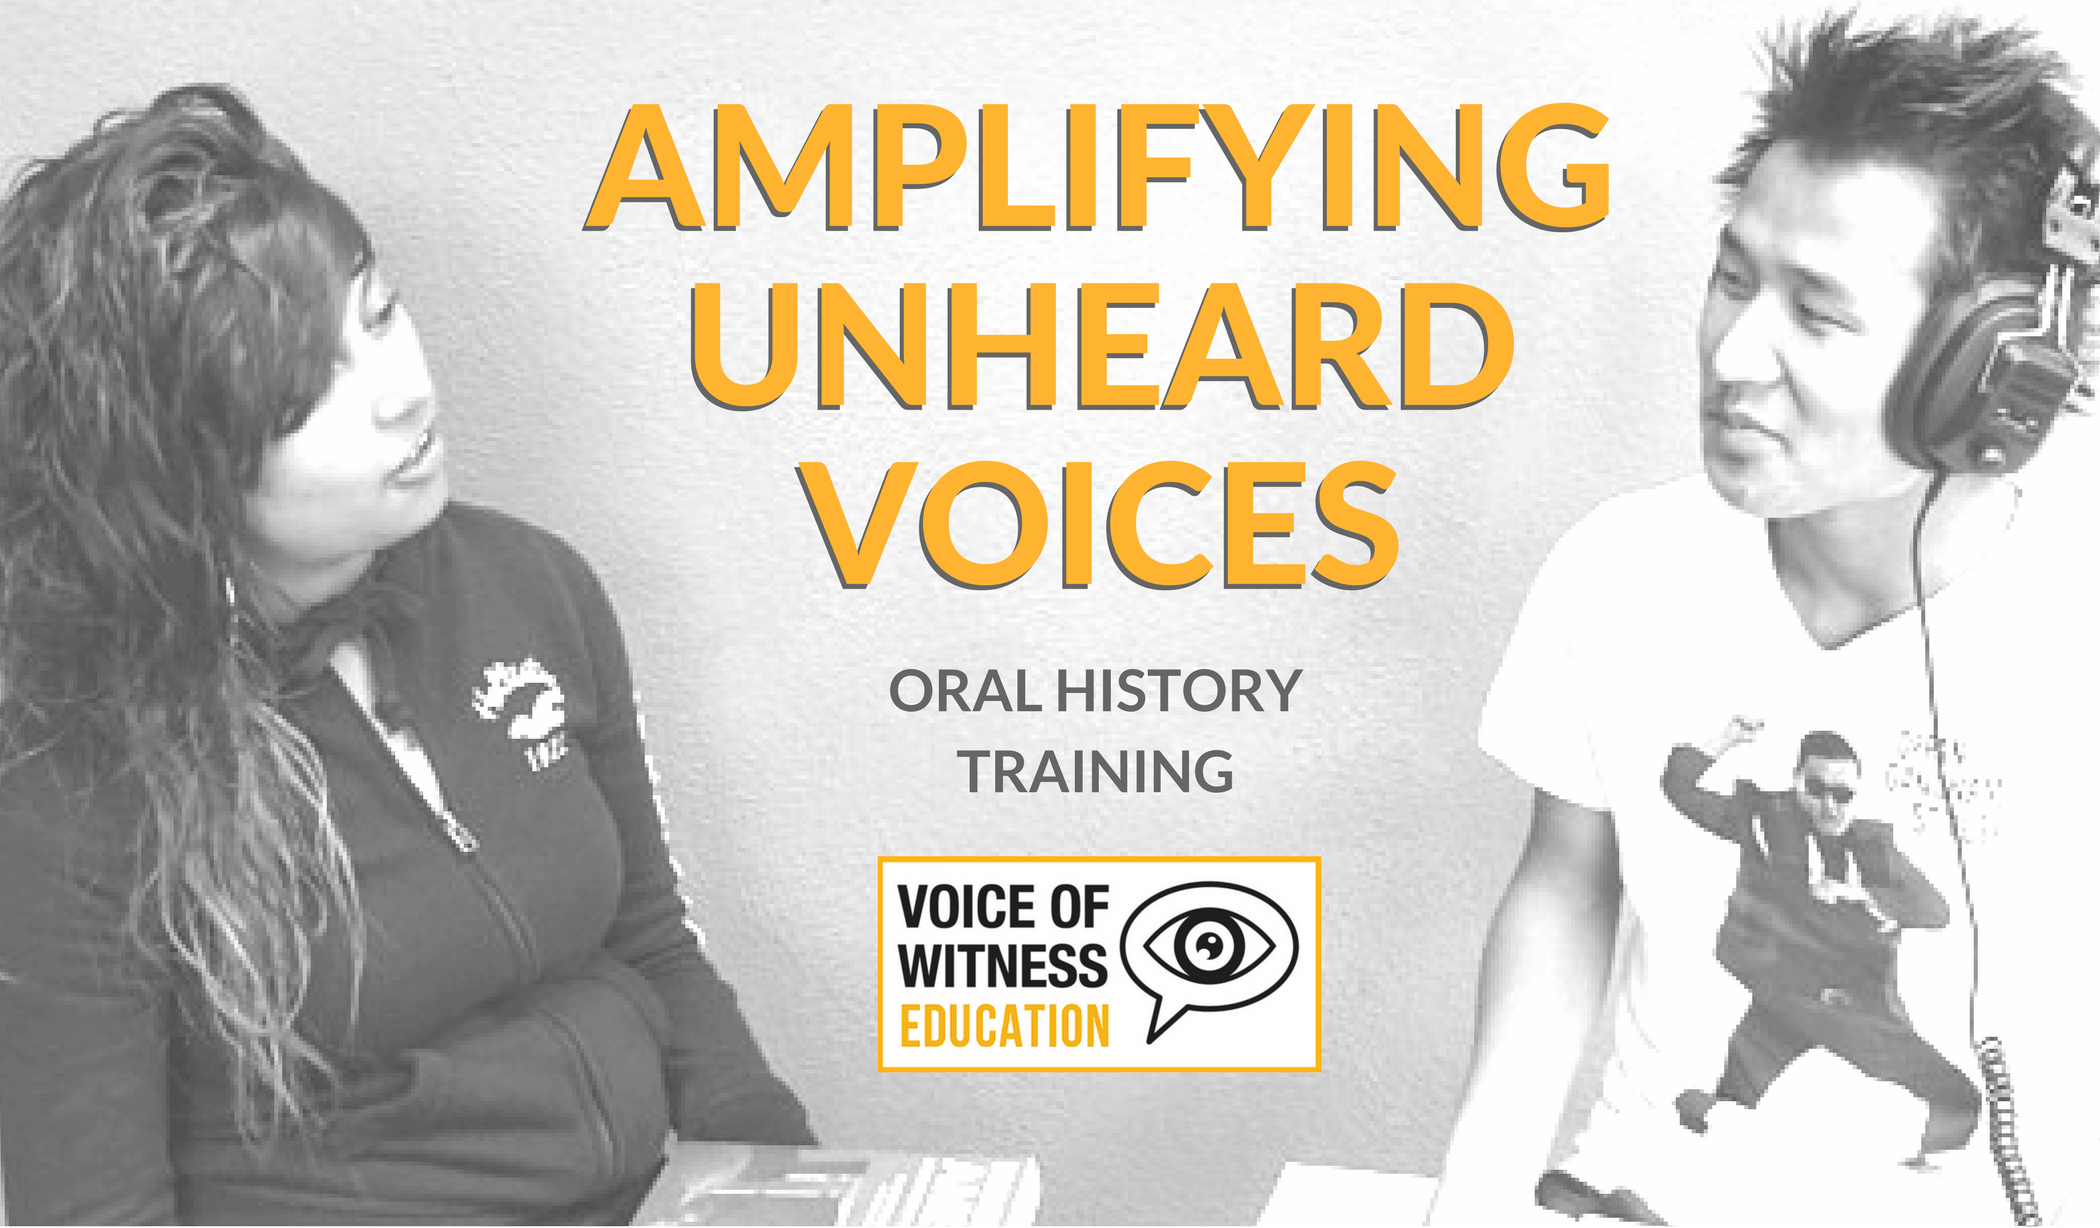 Register Today: Amplifying Unheard Voices Summer Oral History Training